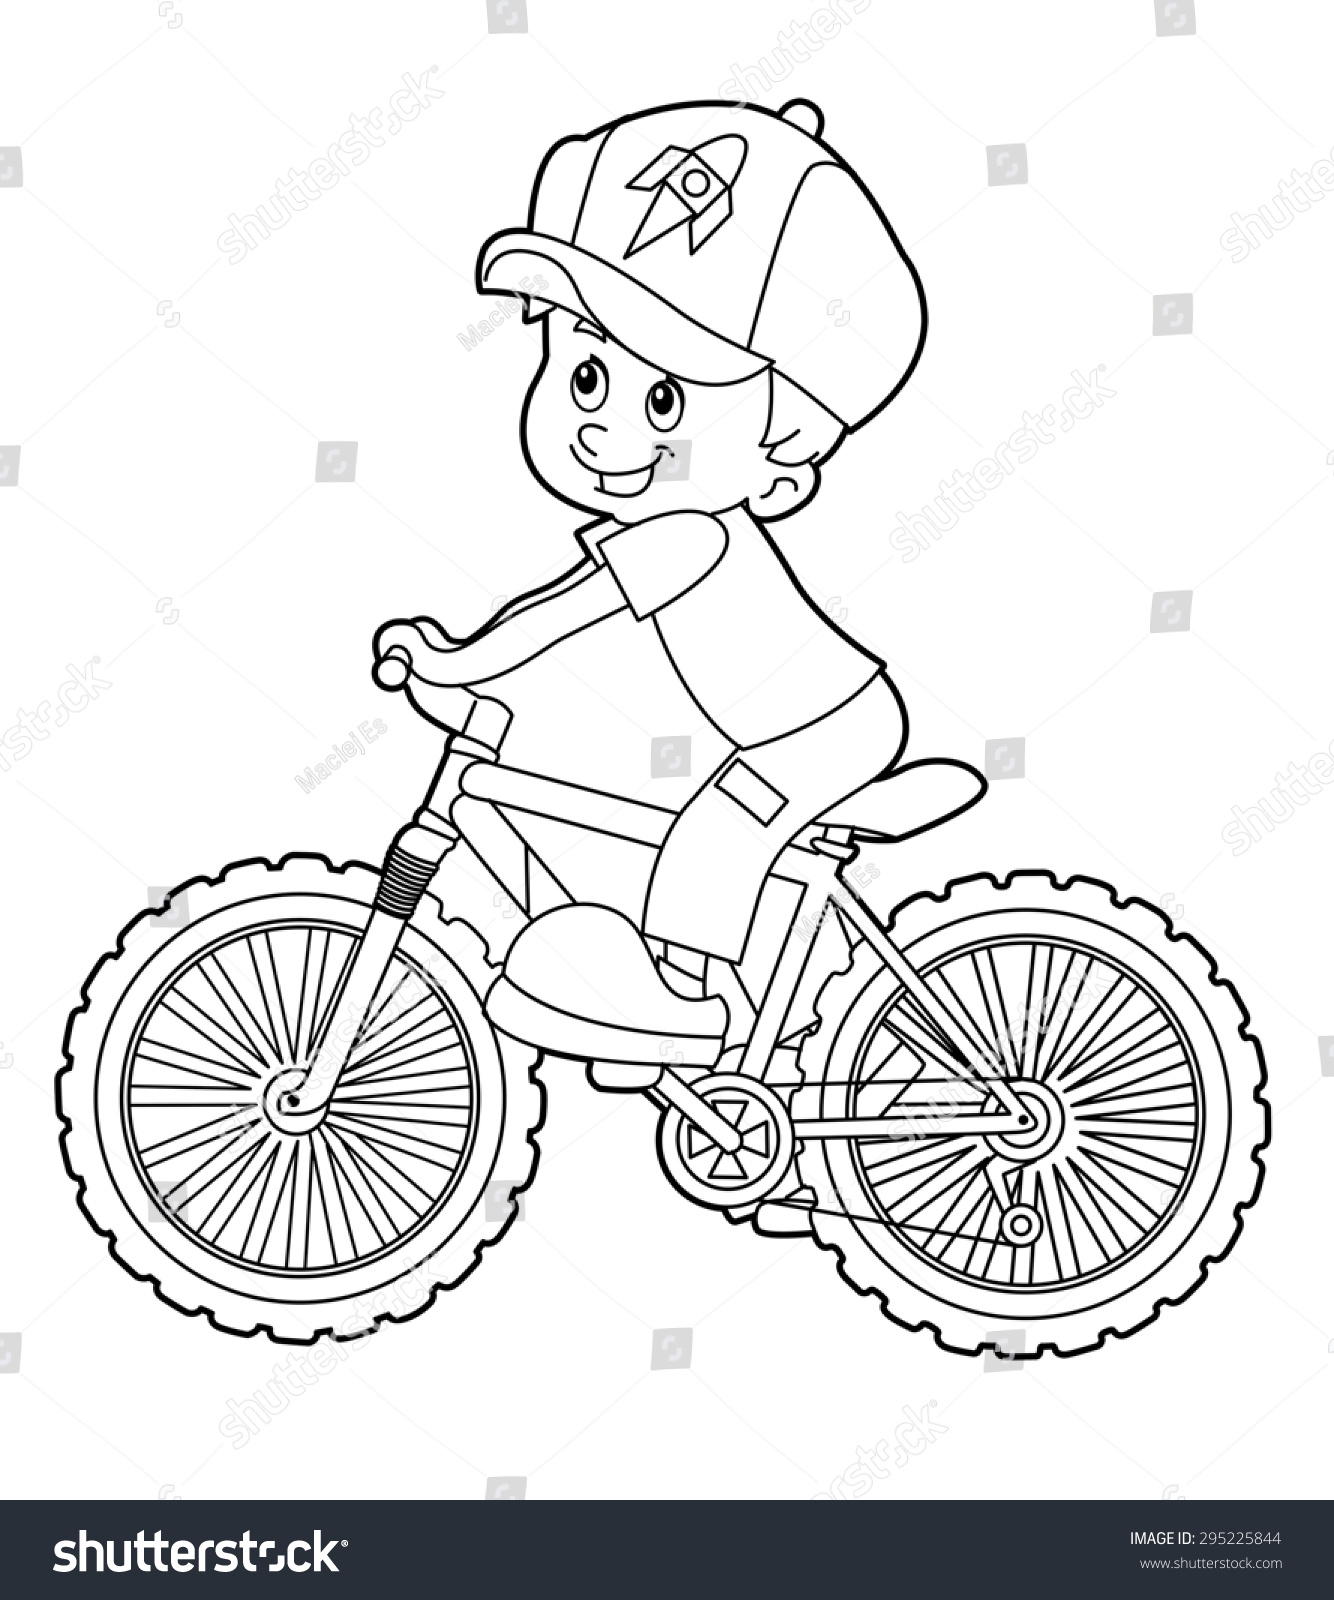 cartoon kid riding bicycle coloring page illustration for the children - Bicycle Coloring Book